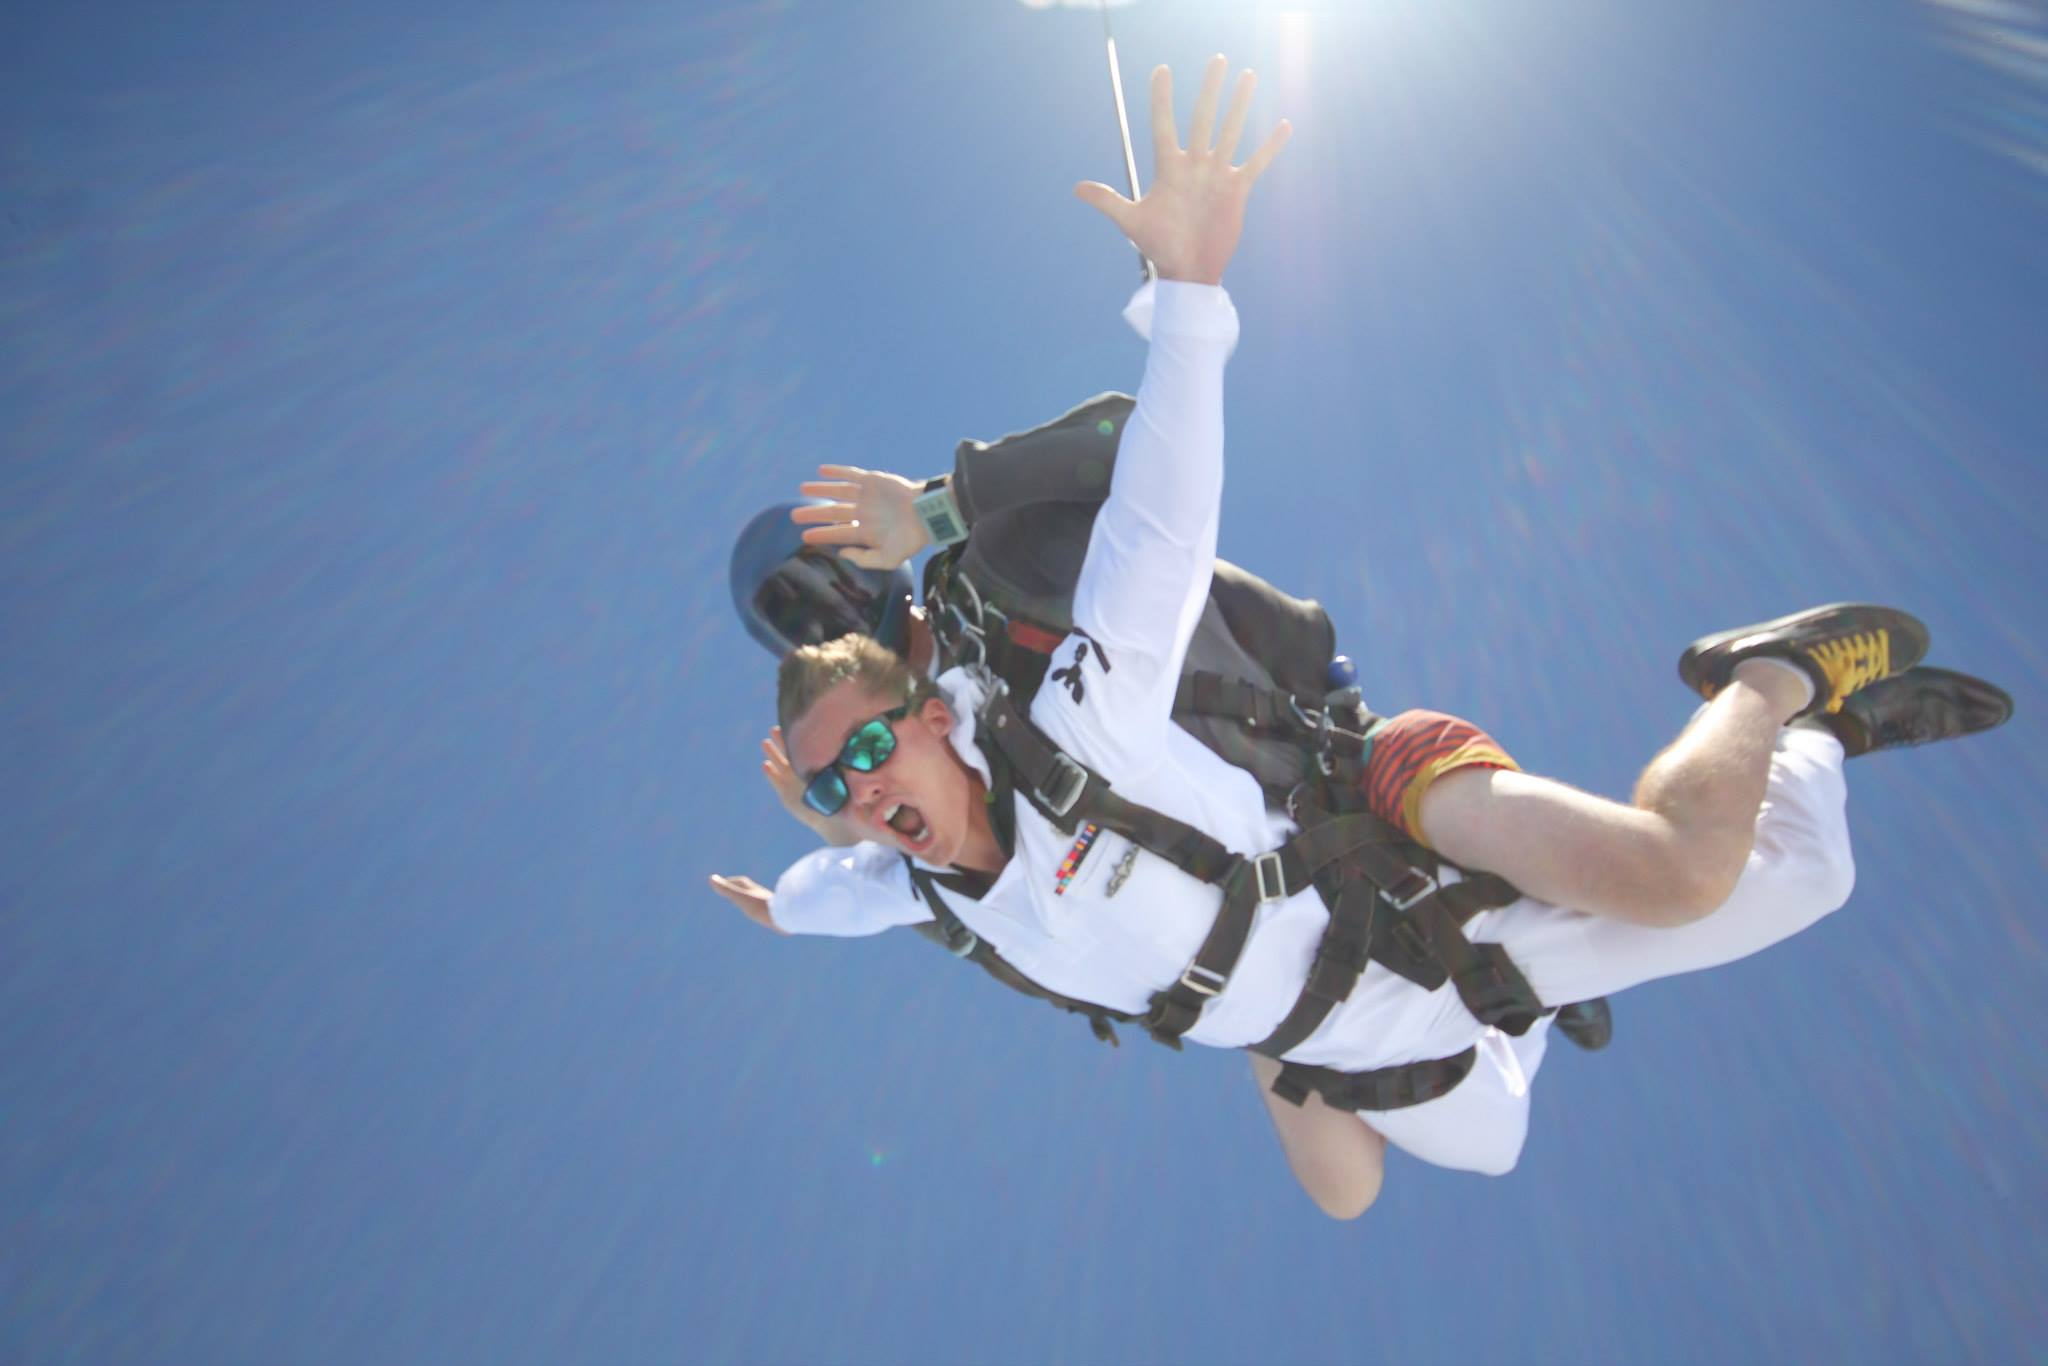 Robert Glennon Skydiving